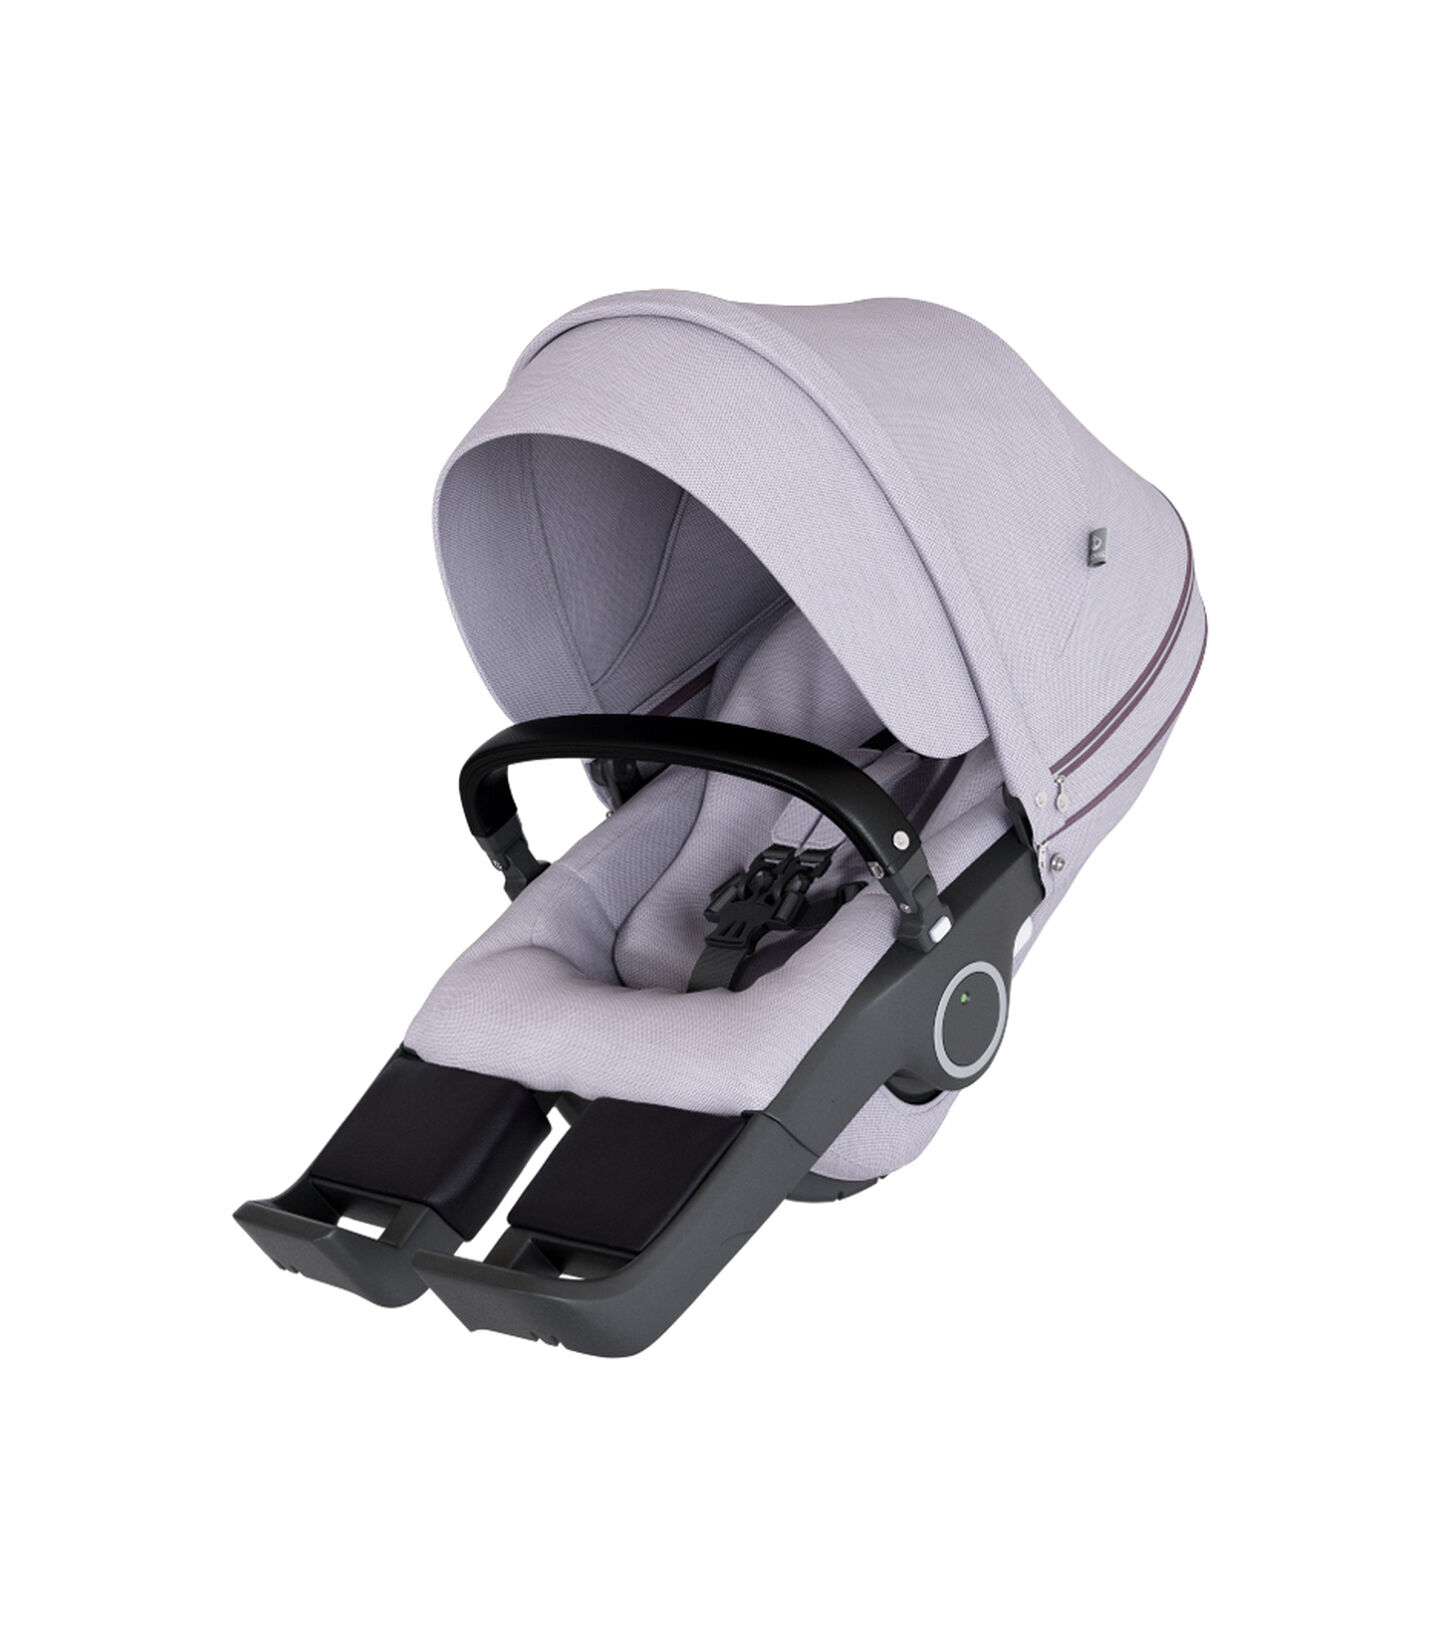 Stokke® Stroller Seat Brushed Lilac, Brushed Lilac, mainview view 2